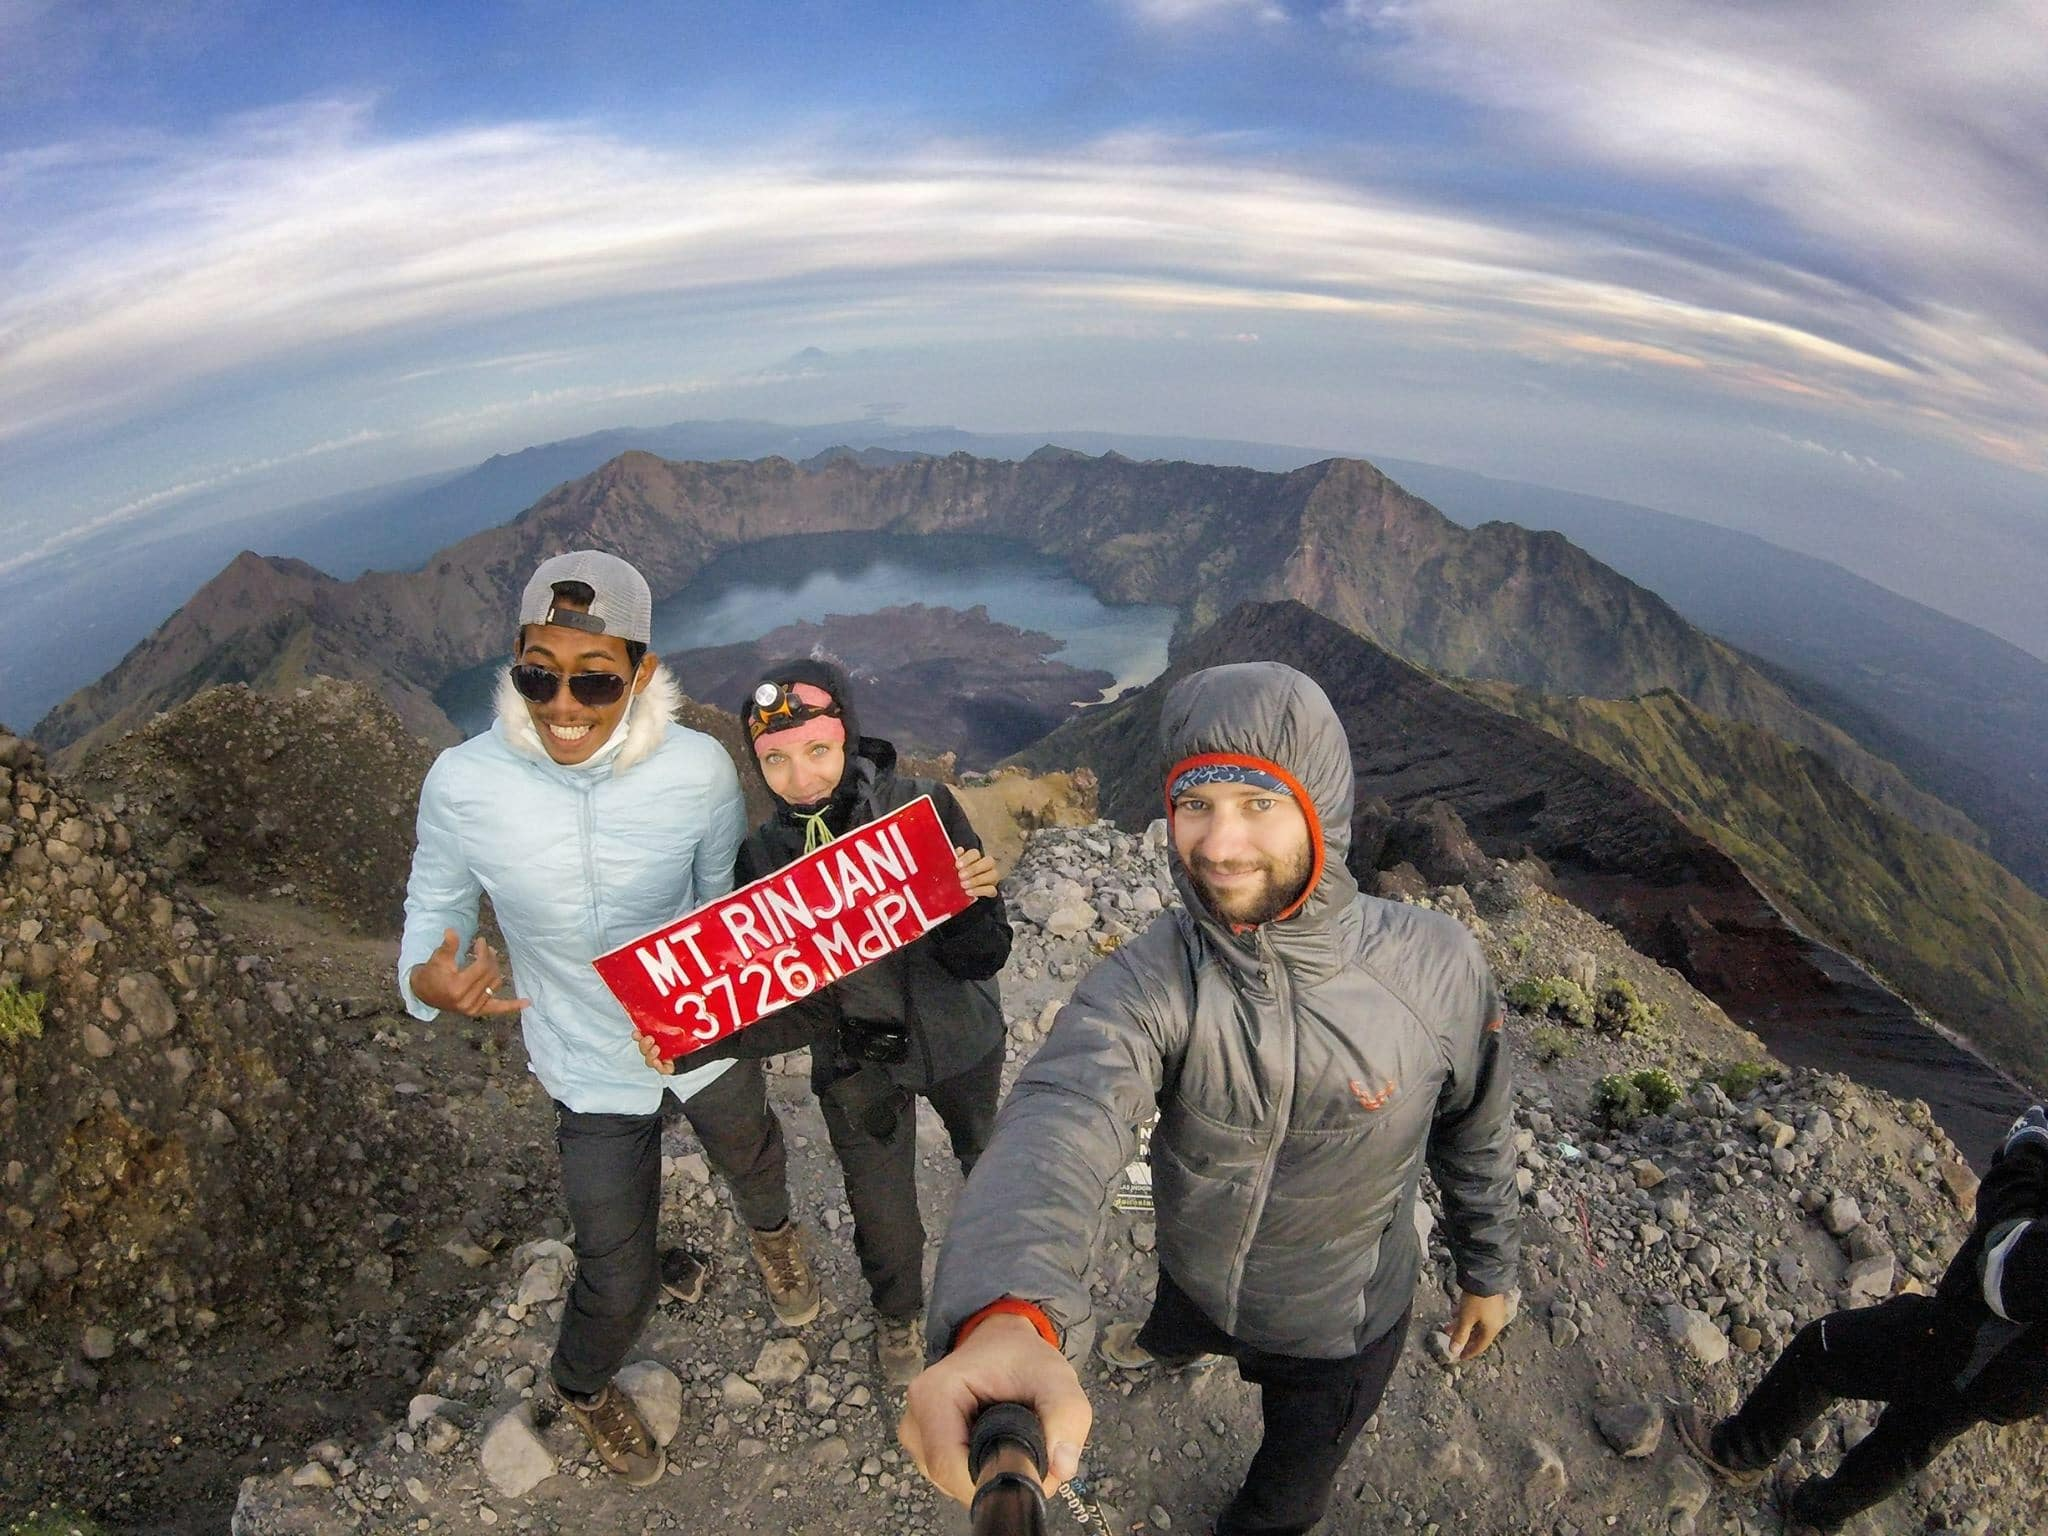 Rinjani Guide and our guest